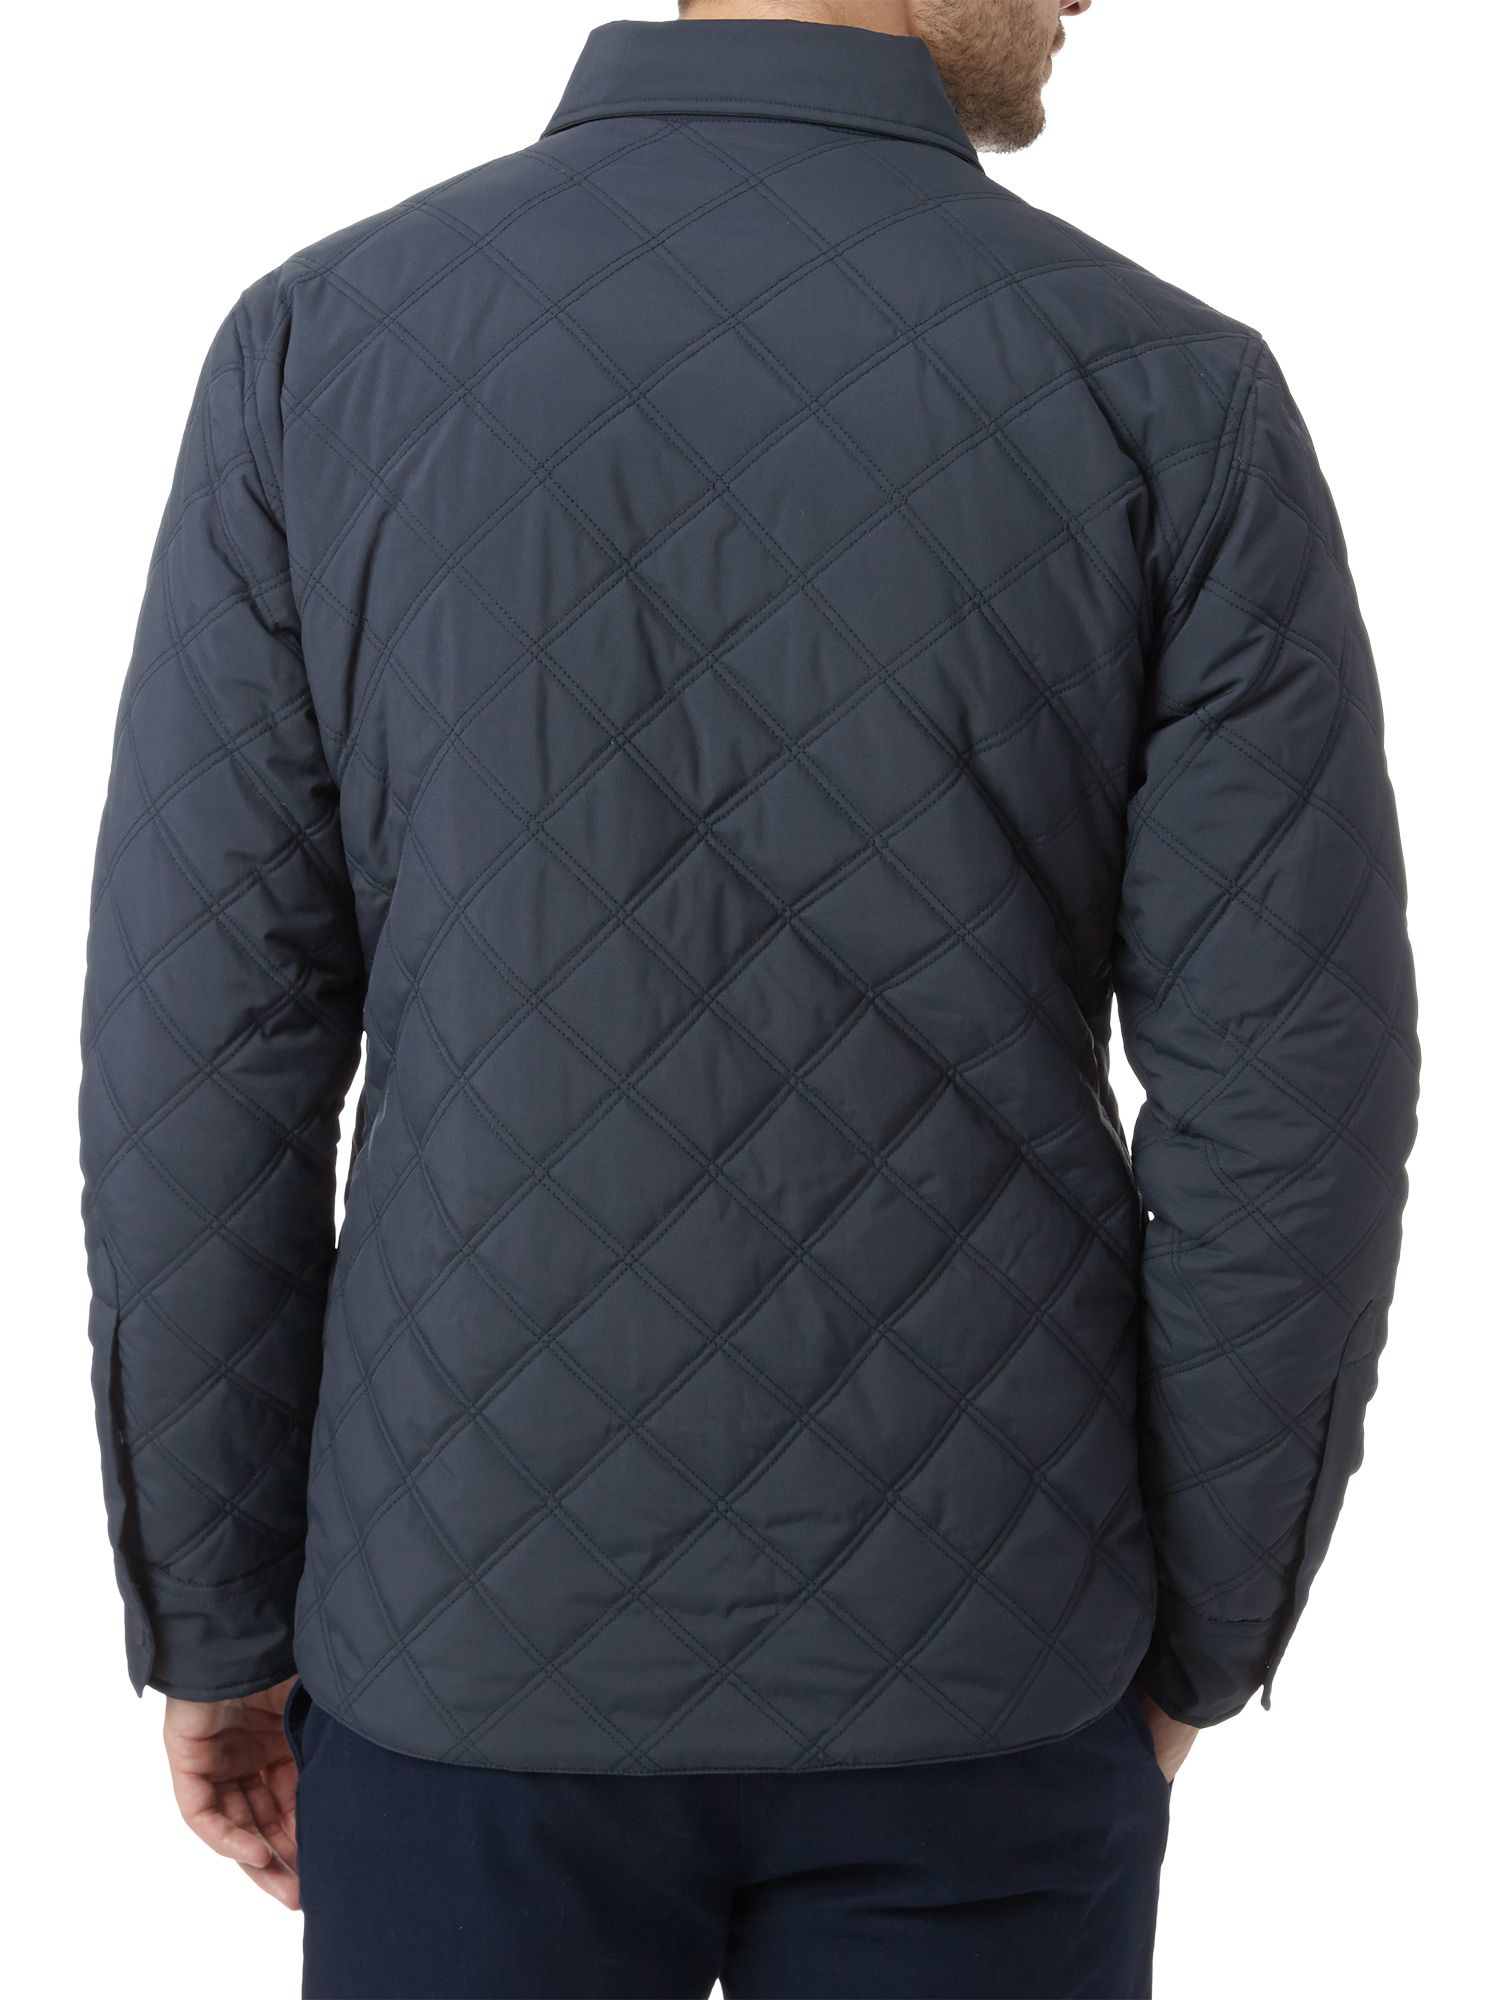 Lyst Lacoste Diamond Quilted Jacket In Blue For Men